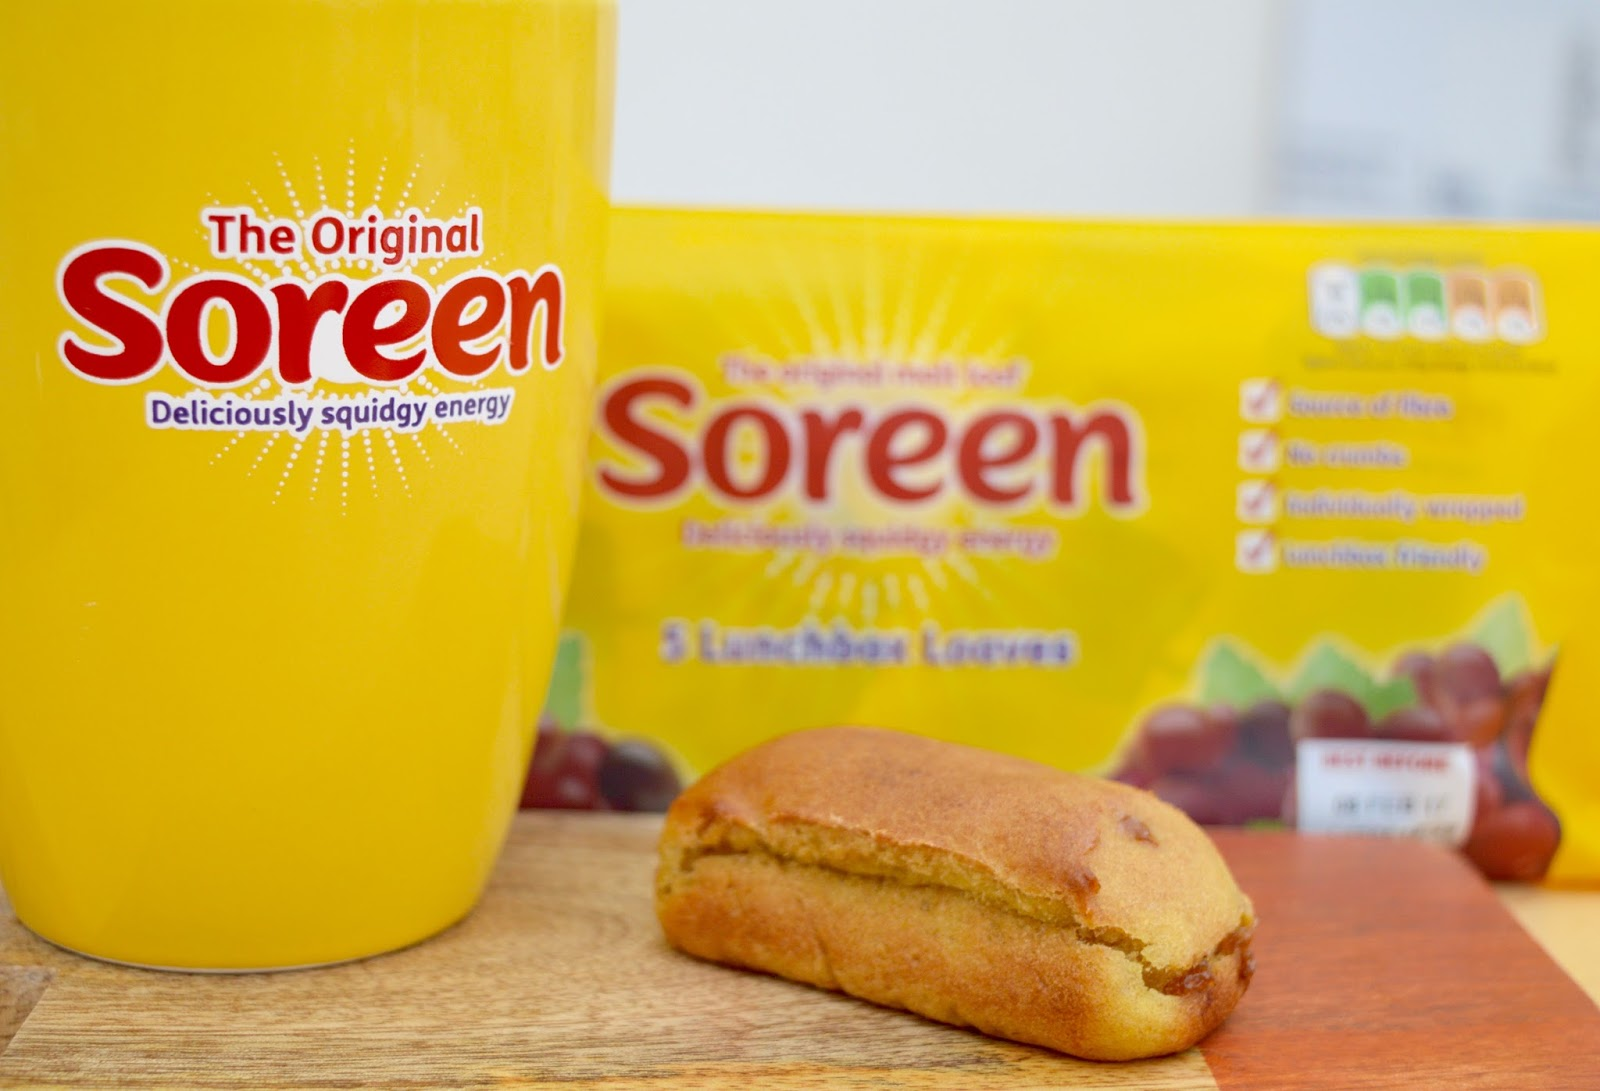 Soreen Lunchbox Loaf Bars | An Ideal Healthy Snack for Kids that is low in saturated fat.  - with coffee